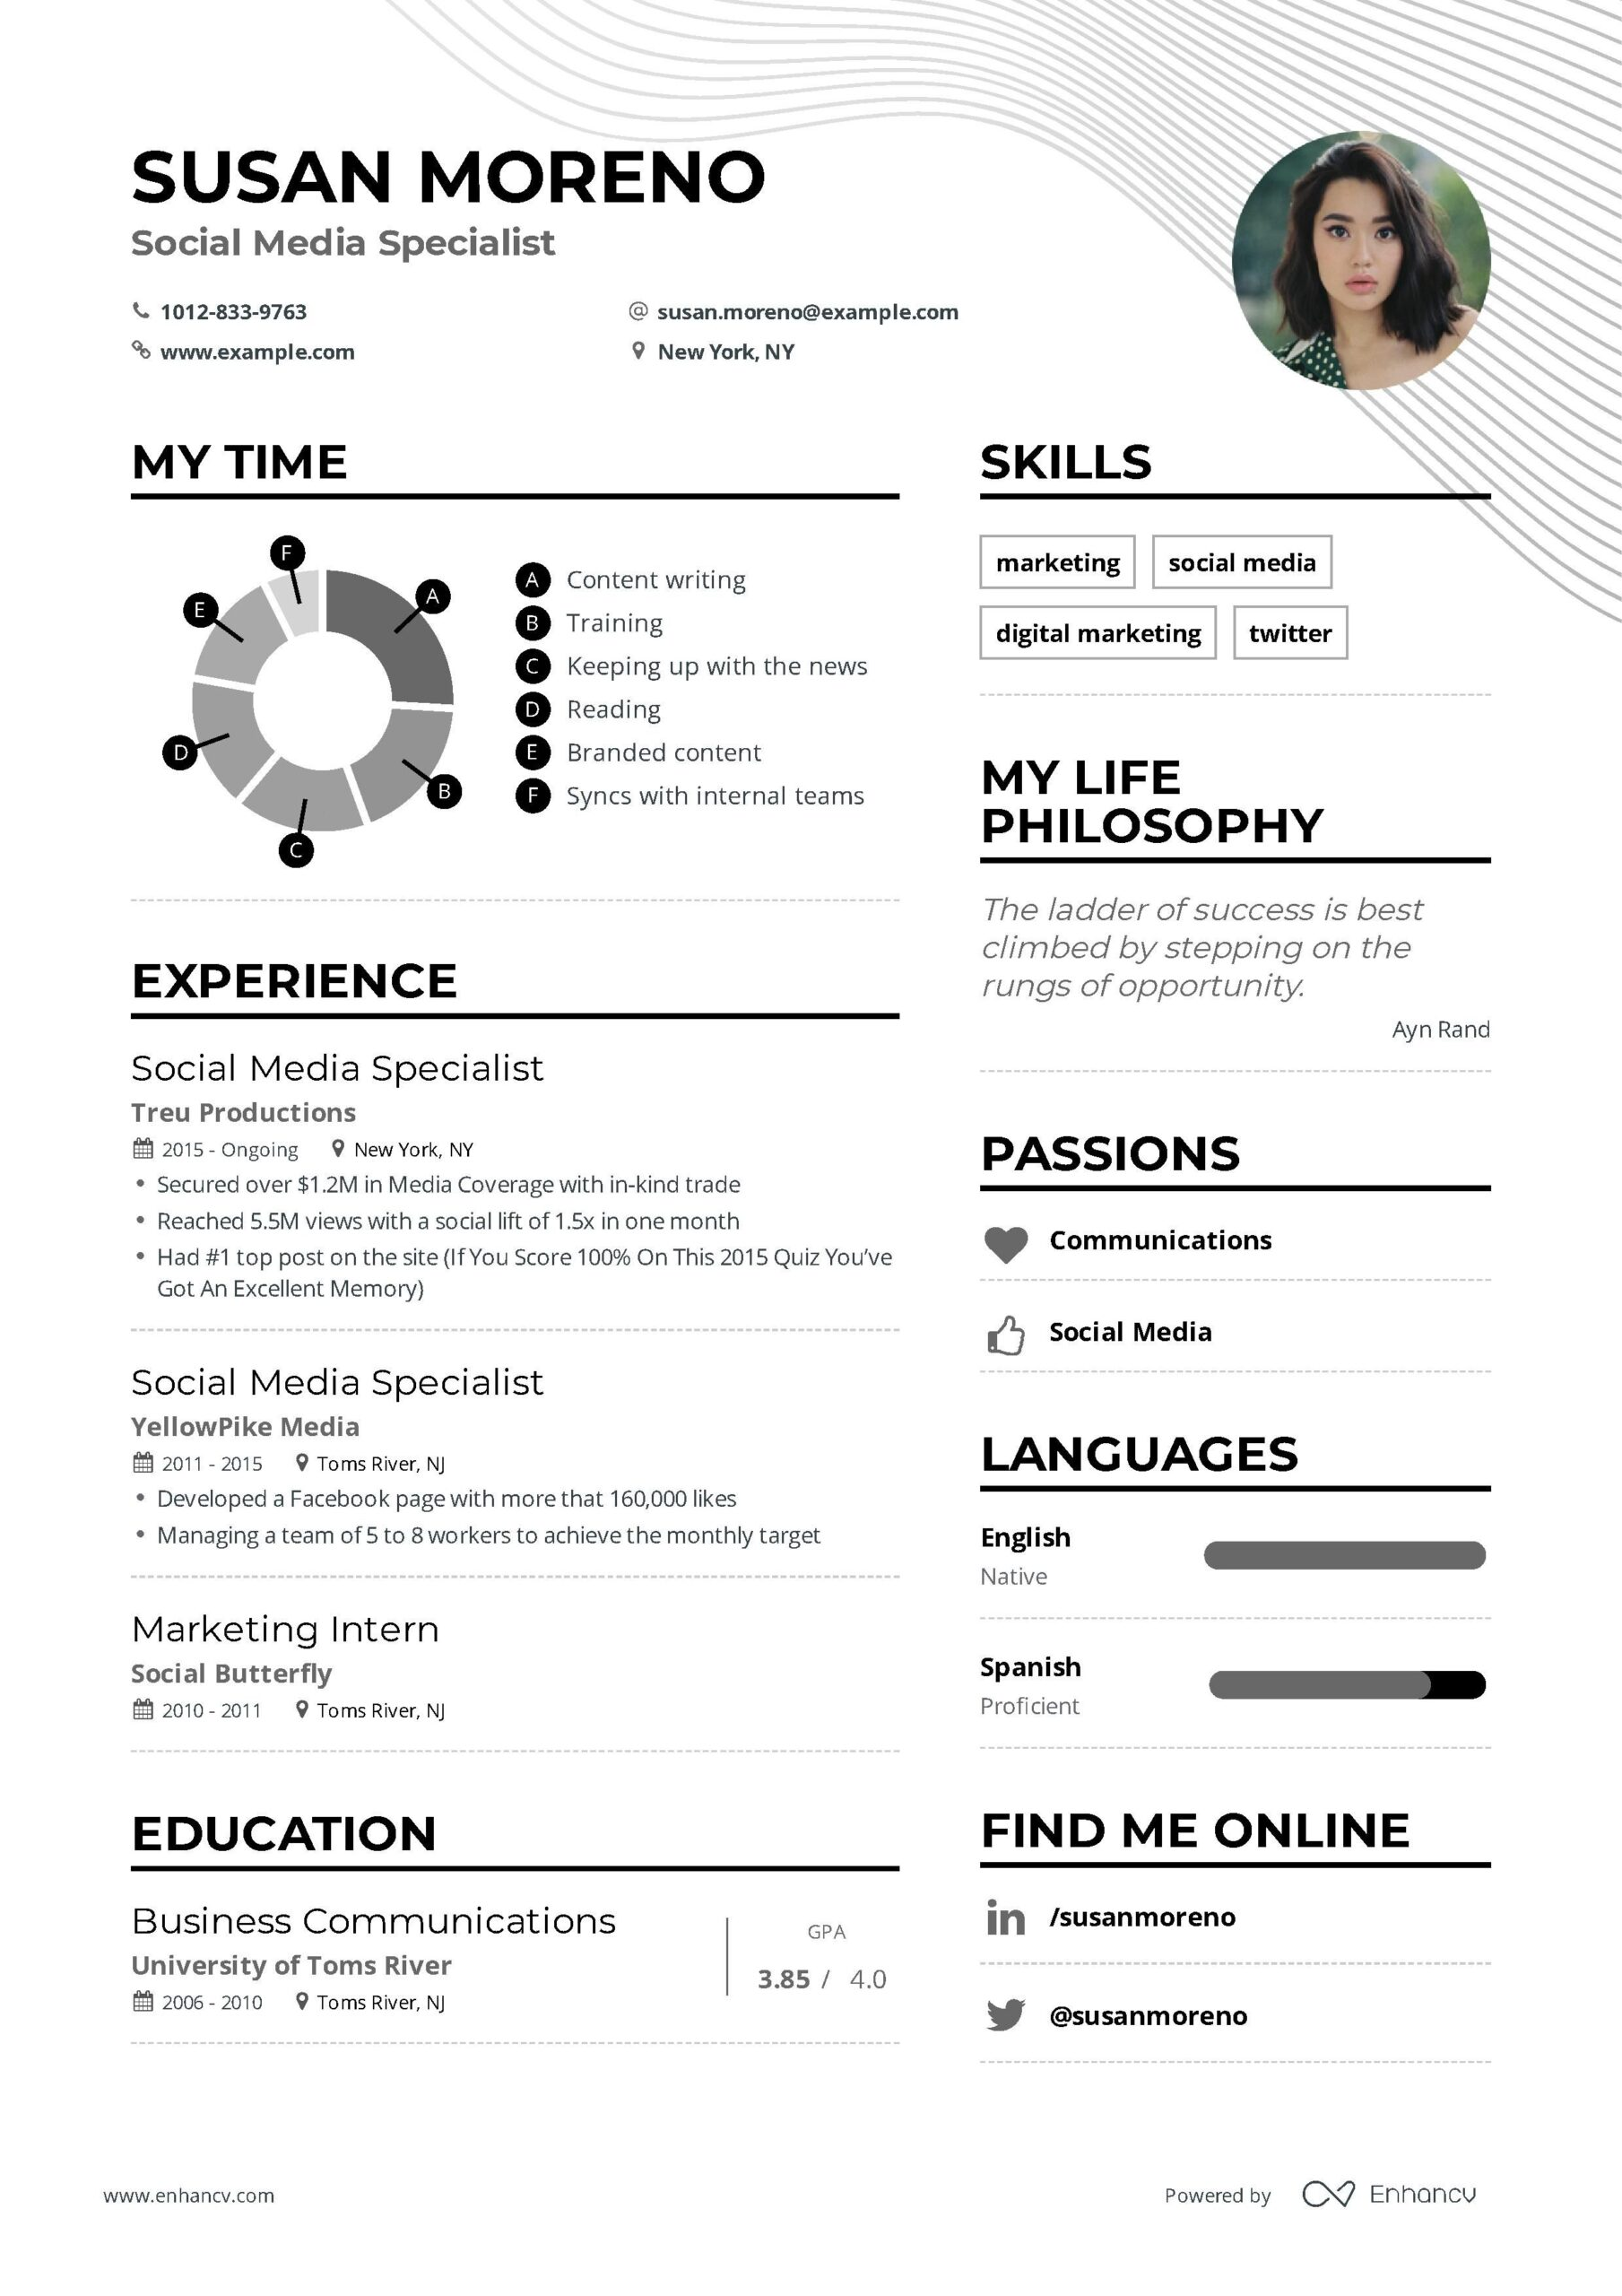 social media specialist resume example and guide for examples marketing studies Resume Business Resume Examples 2019